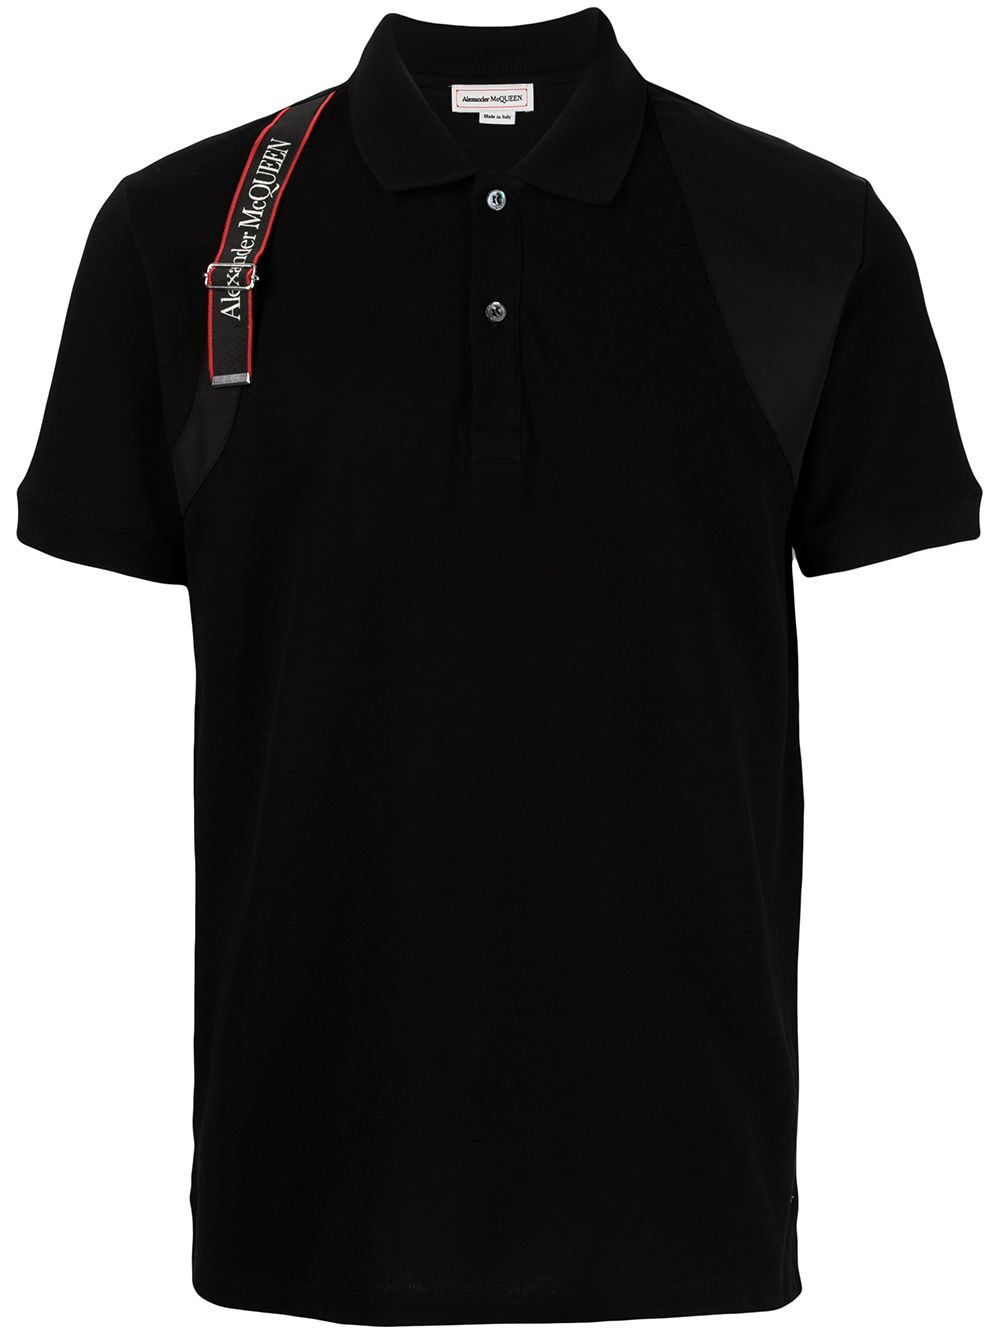 ALEXANDER MCQUEEN Logo Harness Polo Shirt Black - Maison De Fashion